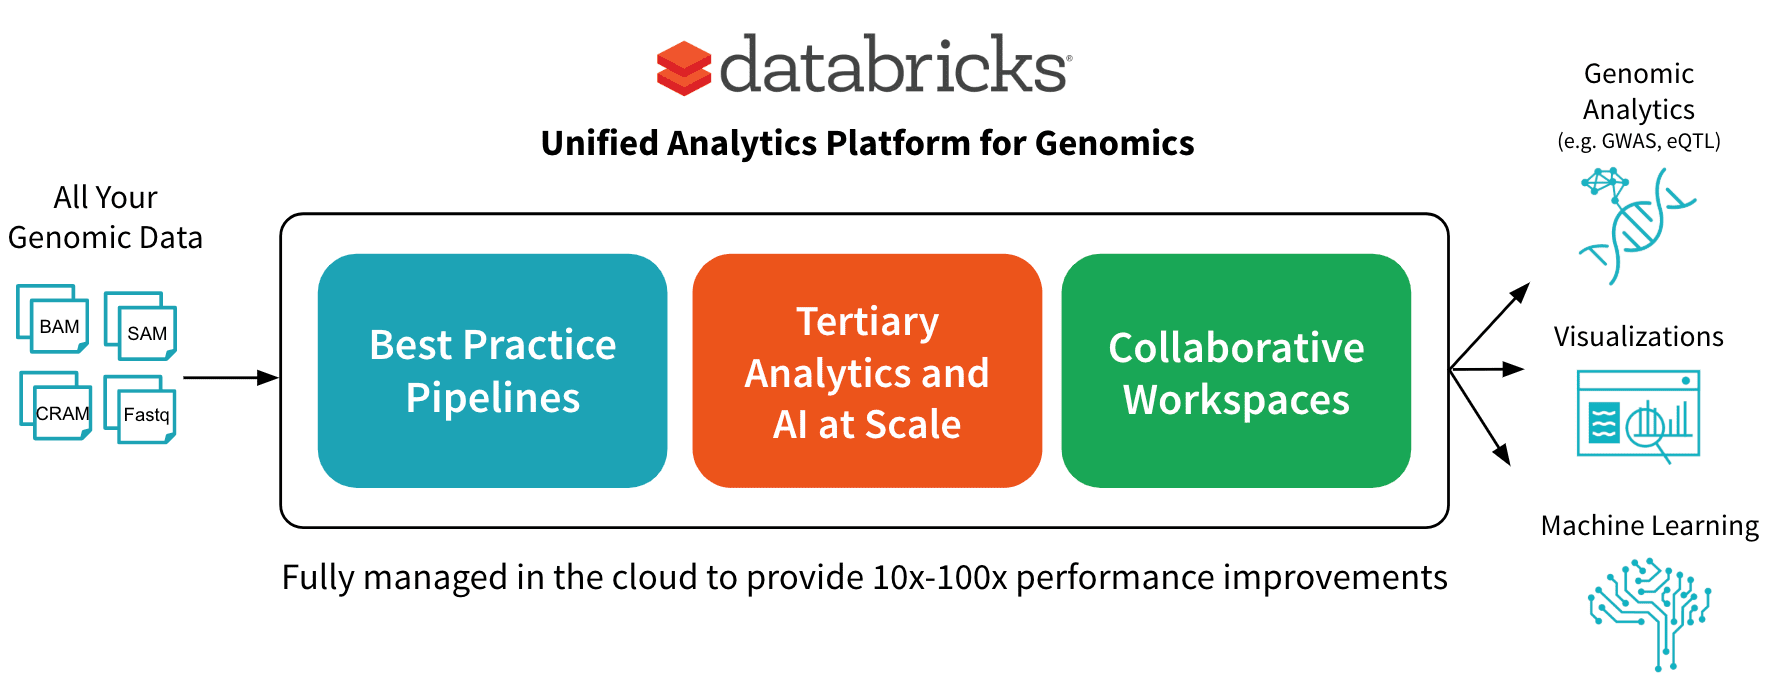 Building the Fastest DNASeq Pipeline at Scale - The